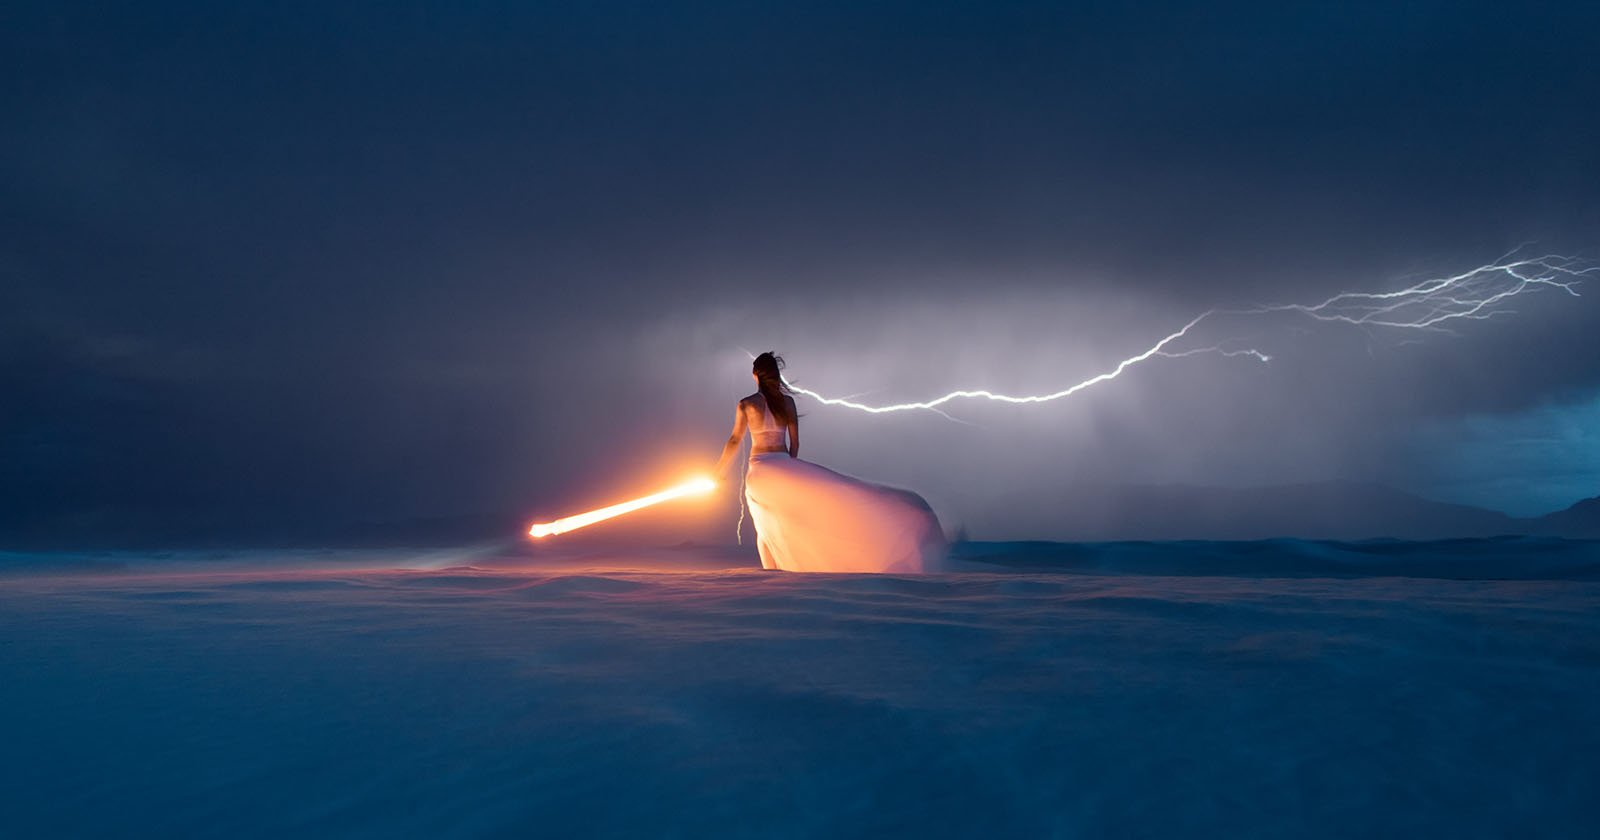 My Model Triggered a Lightning Self-Portrait, And She Nailed It